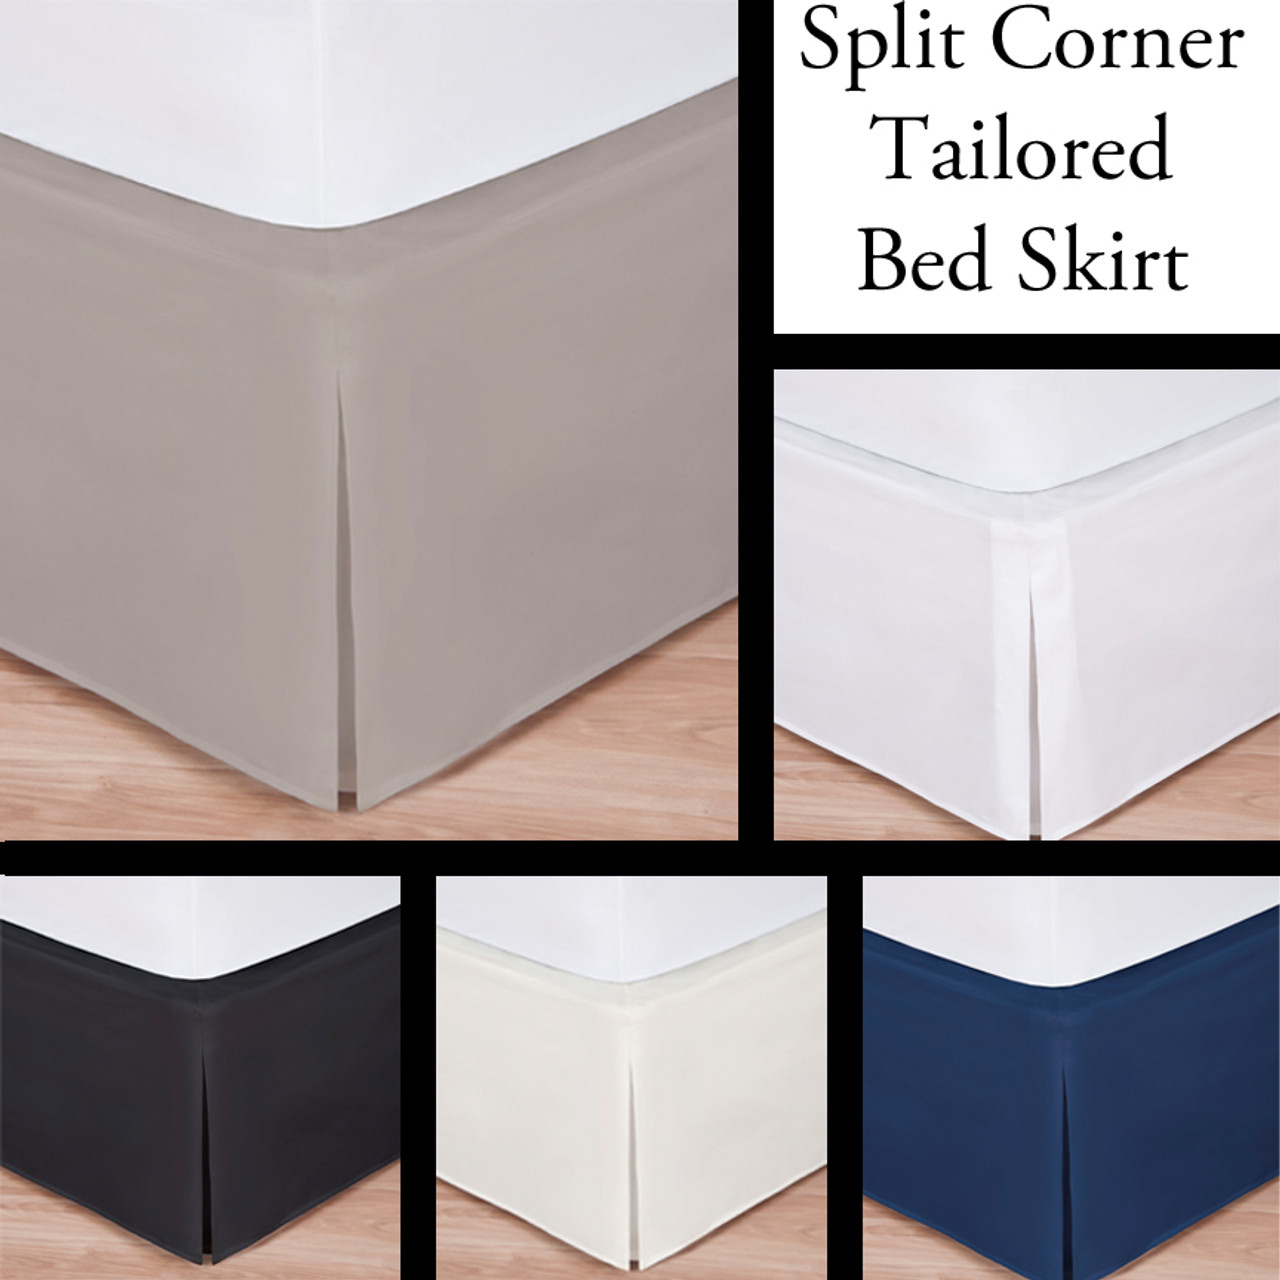 Luxury Hotel Bed Skirt Tailored Pleat Queen Size White Ivory Navy Mocha Black I Bathroom And More